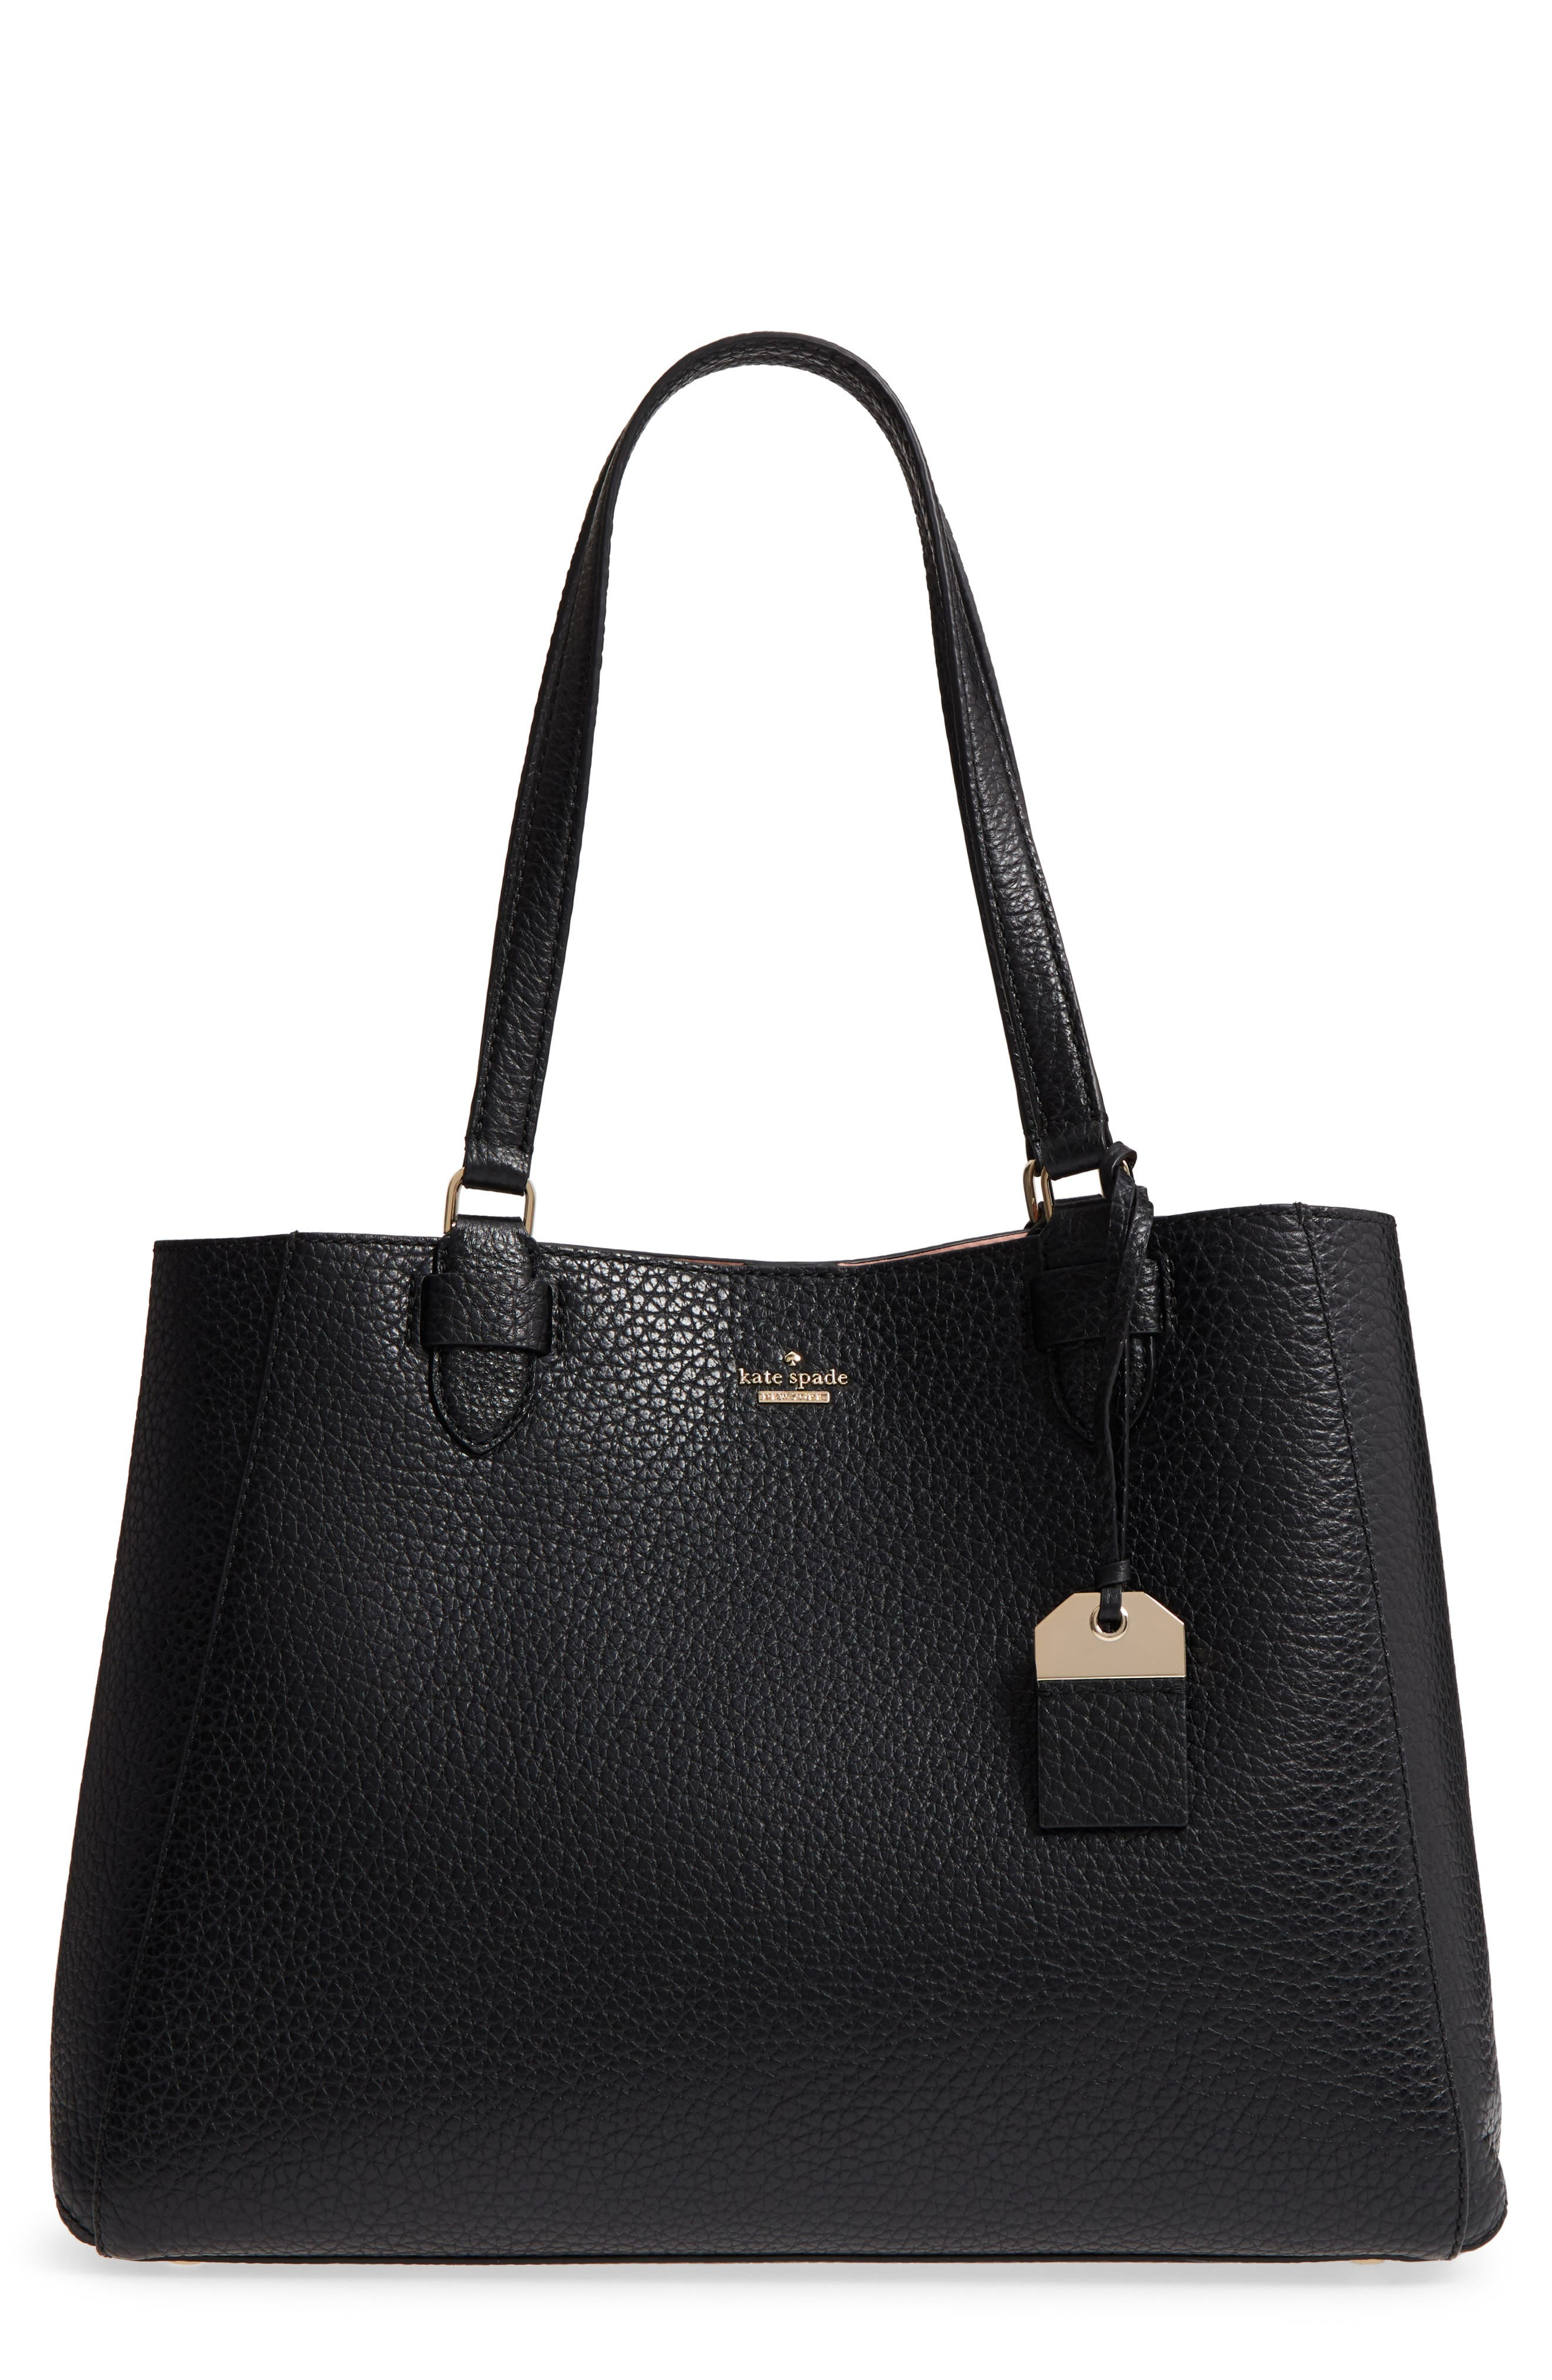 carter street - tyler leather tote,                         Main,                         color, Black